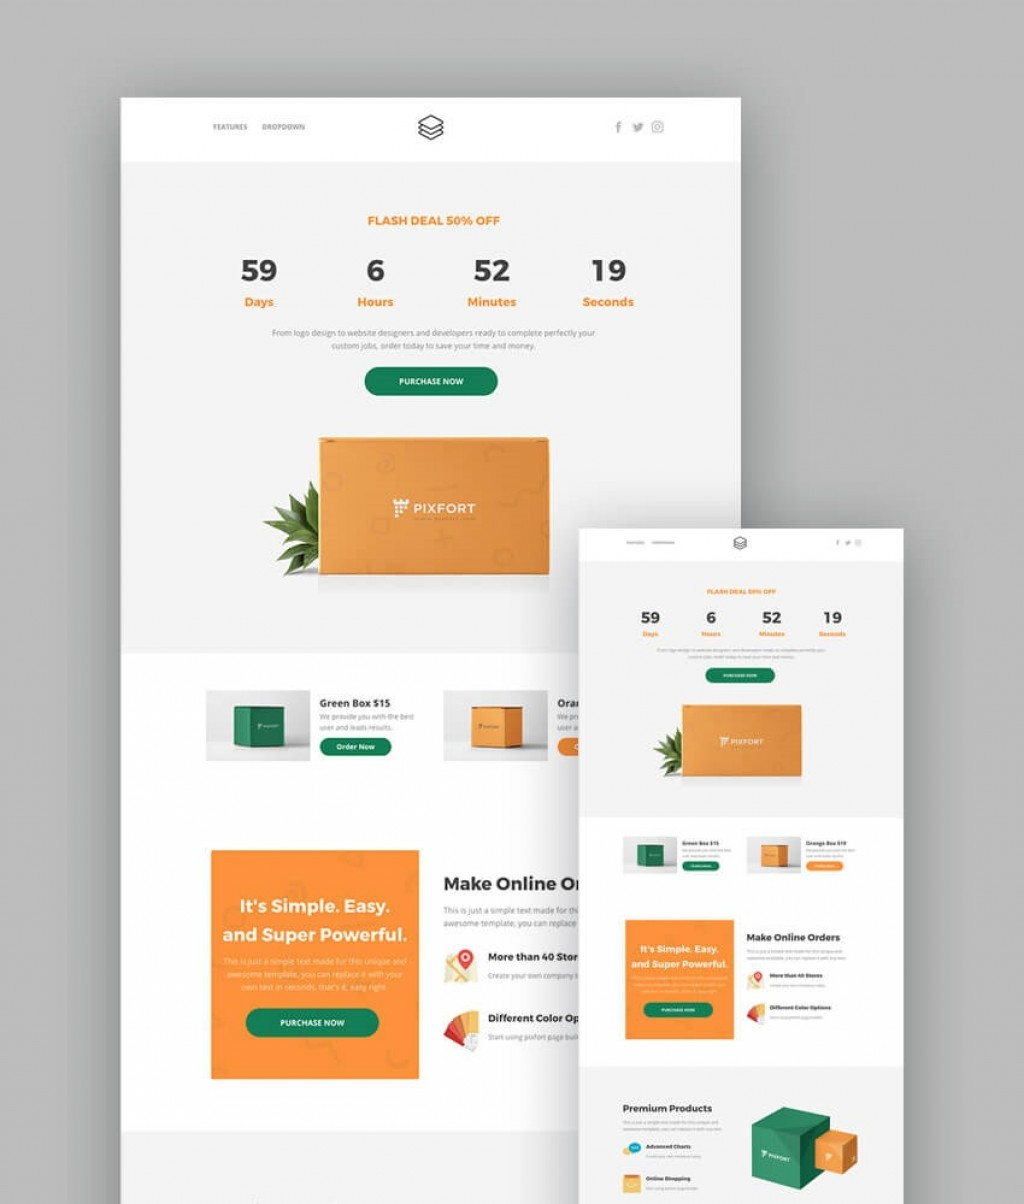 006 Excellent Responsive Landing Page Template Highest Clarity  Free Html With Flexbox Html5Large